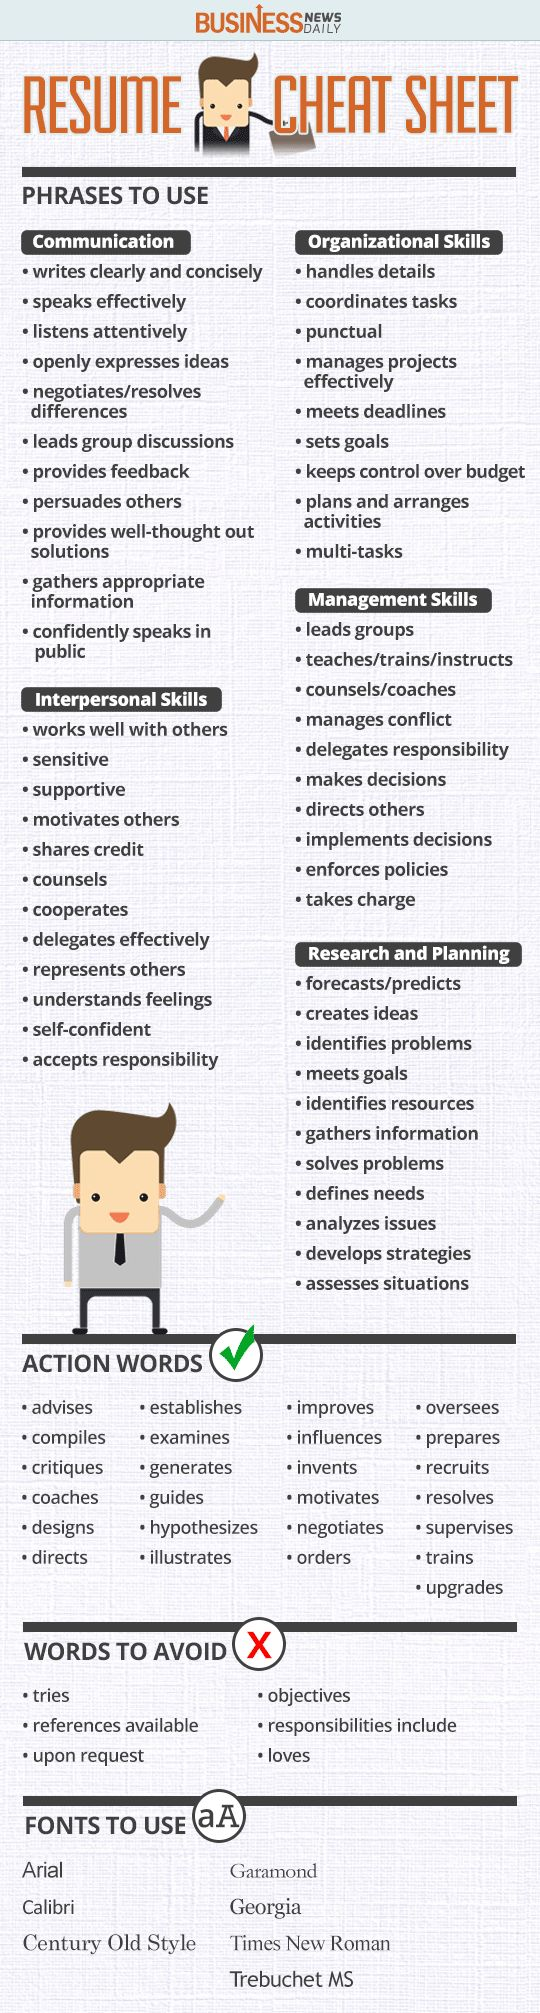 Opposenewapstandardsus  Gorgeous  Ideas About Resume On Pinterest  Cv Format Resume Cv And  With Outstanding Resume Cheat Sheet Infographic Andrews Almost Done With A Complete Unit On Employment Which With Amazing Nursing Resume Also Resume Template Microsoft Word In Addition Resume Objective And Best Font For Resume As Well As Resume Templates Additionally Job Resume Examples From Pinterestcom With Opposenewapstandardsus  Outstanding  Ideas About Resume On Pinterest  Cv Format Resume Cv And  With Amazing Resume Cheat Sheet Infographic Andrews Almost Done With A Complete Unit On Employment Which And Gorgeous Nursing Resume Also Resume Template Microsoft Word In Addition Resume Objective From Pinterestcom